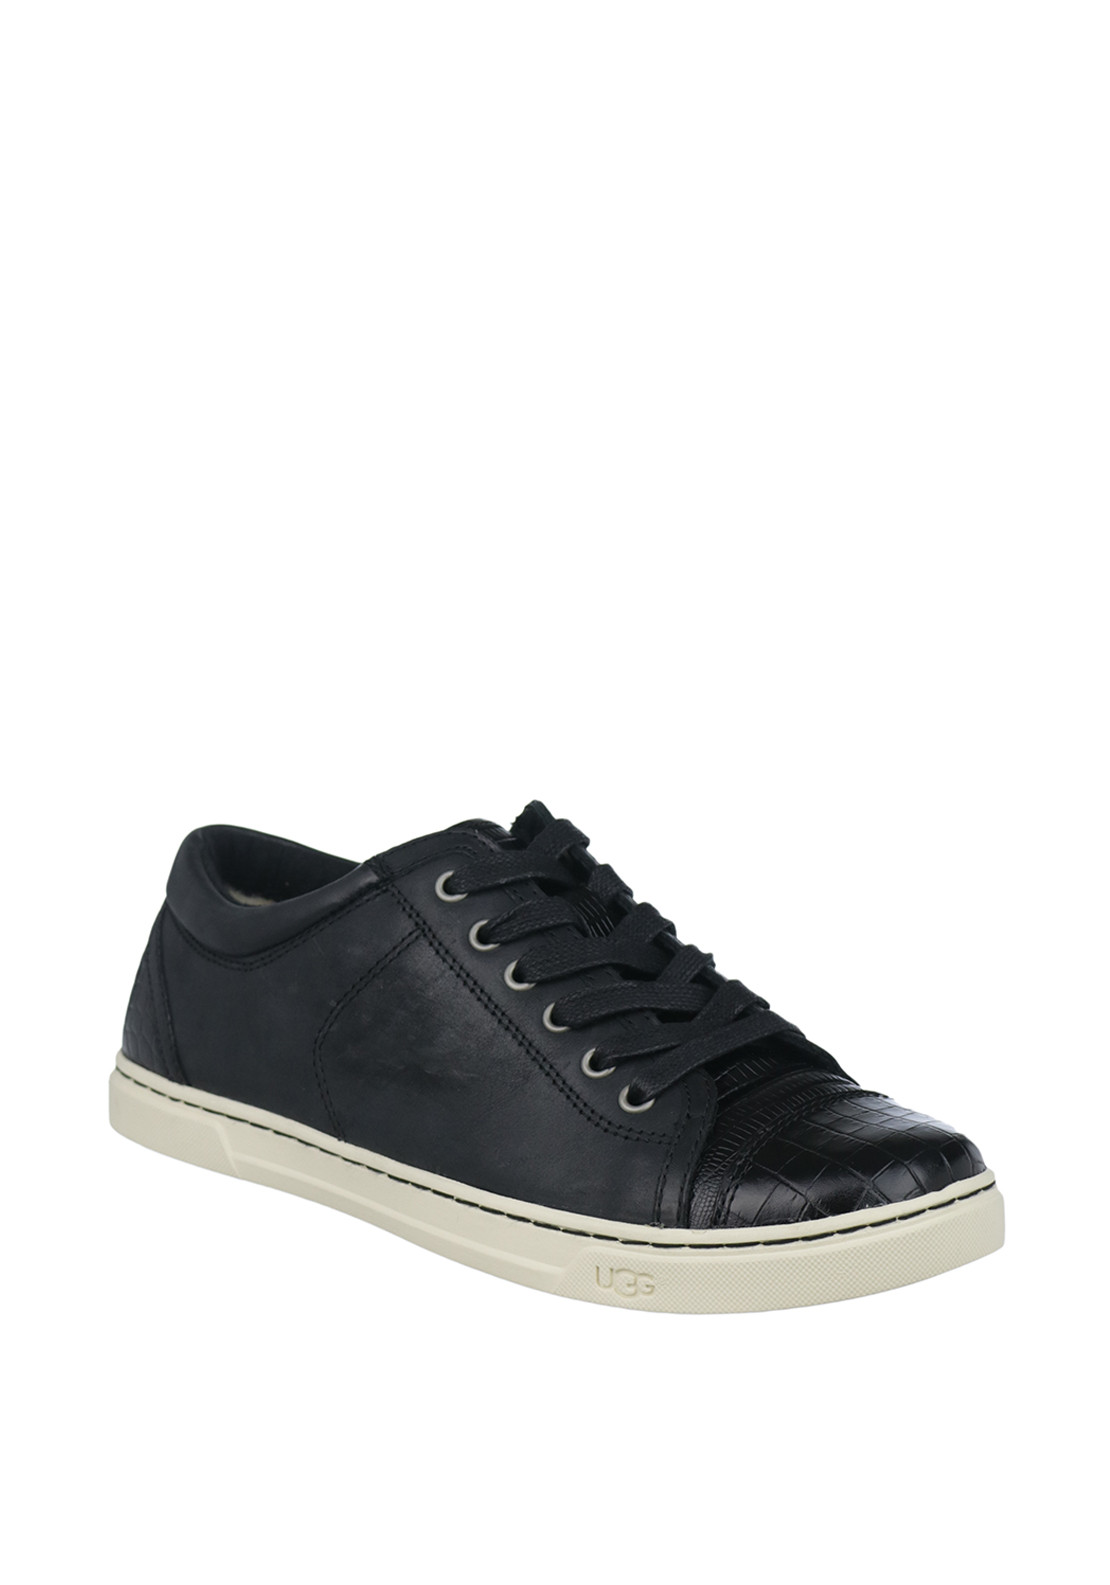 UGG Australia Womens Taya Croc Leather Trainers, Black